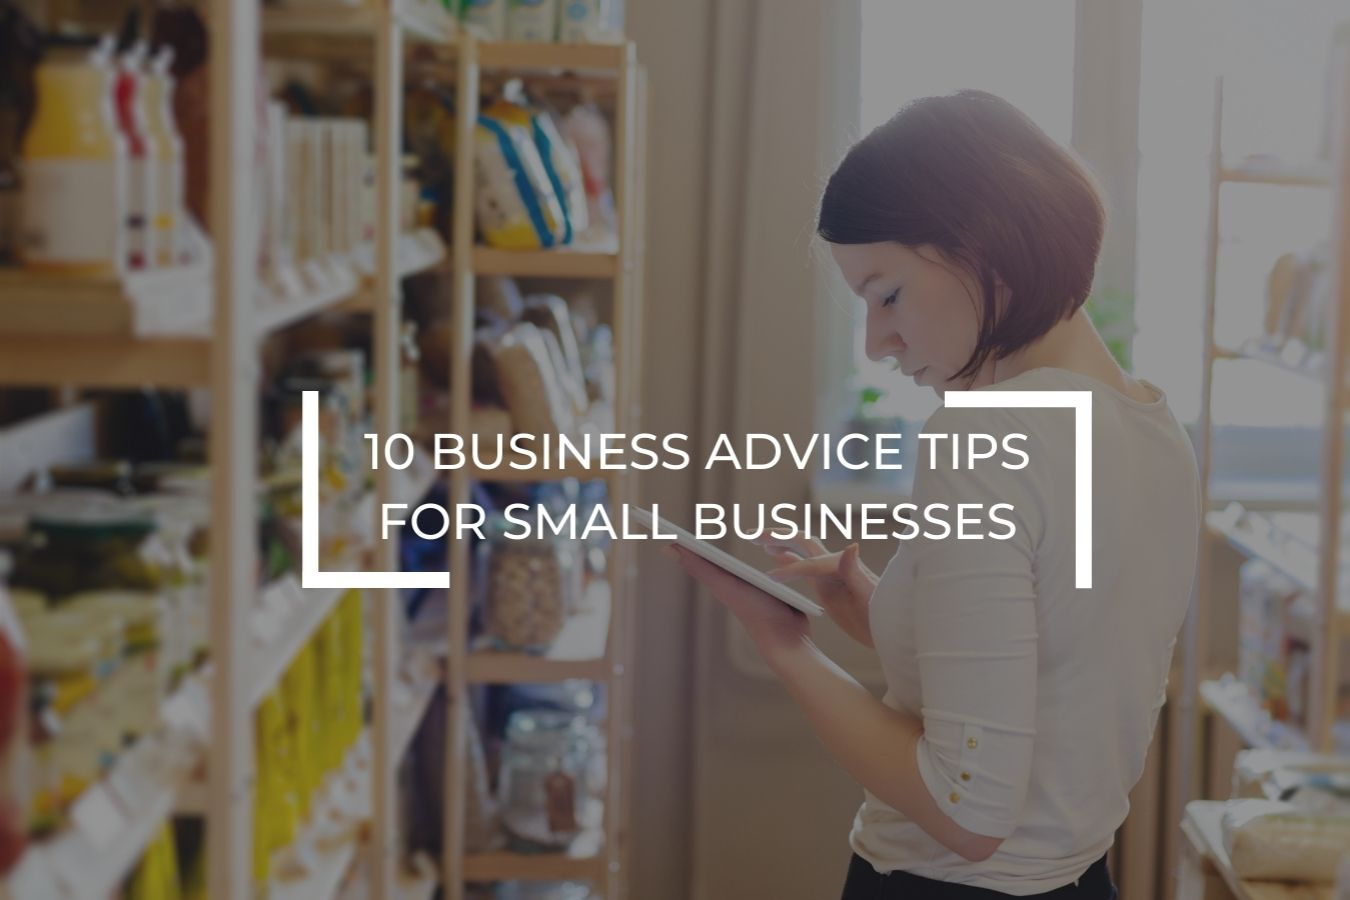 10 business advice tips for small businesses